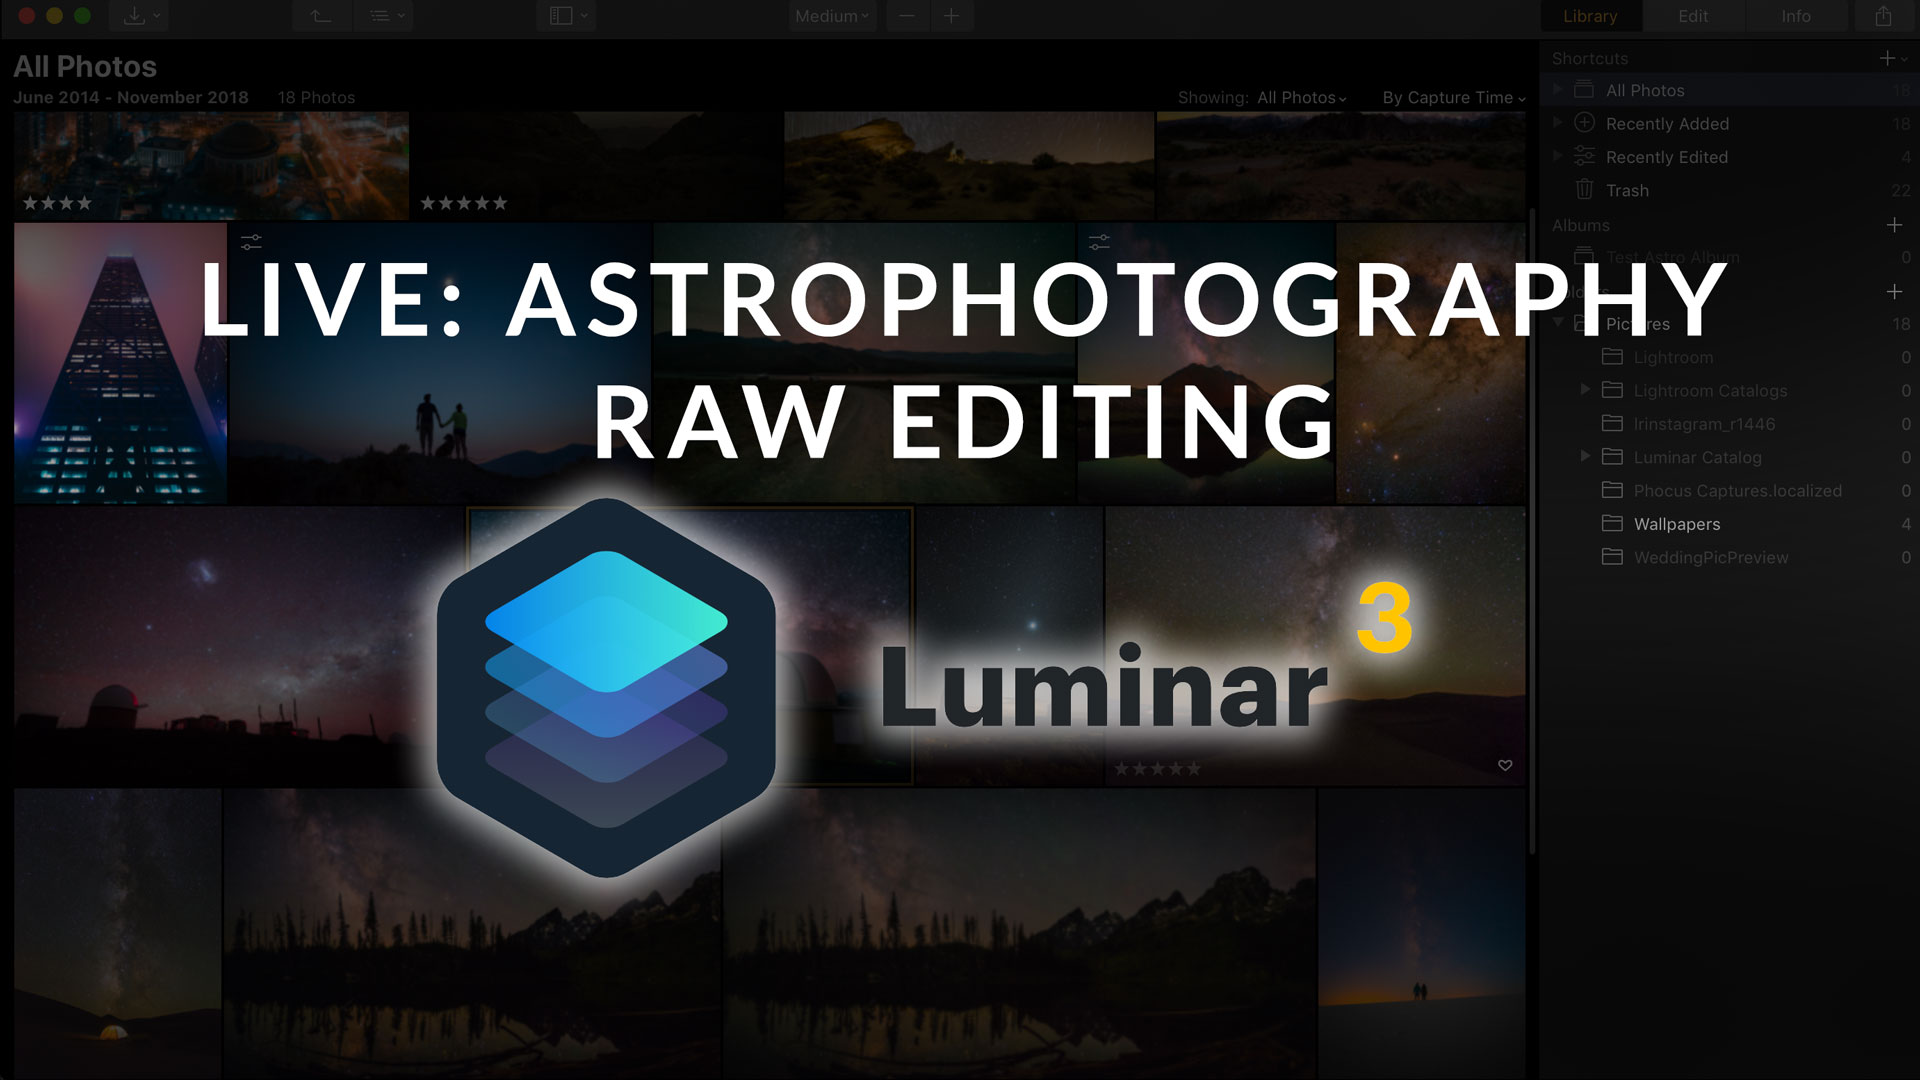 Live: Astrophotography RAW Editing in Luminar 3